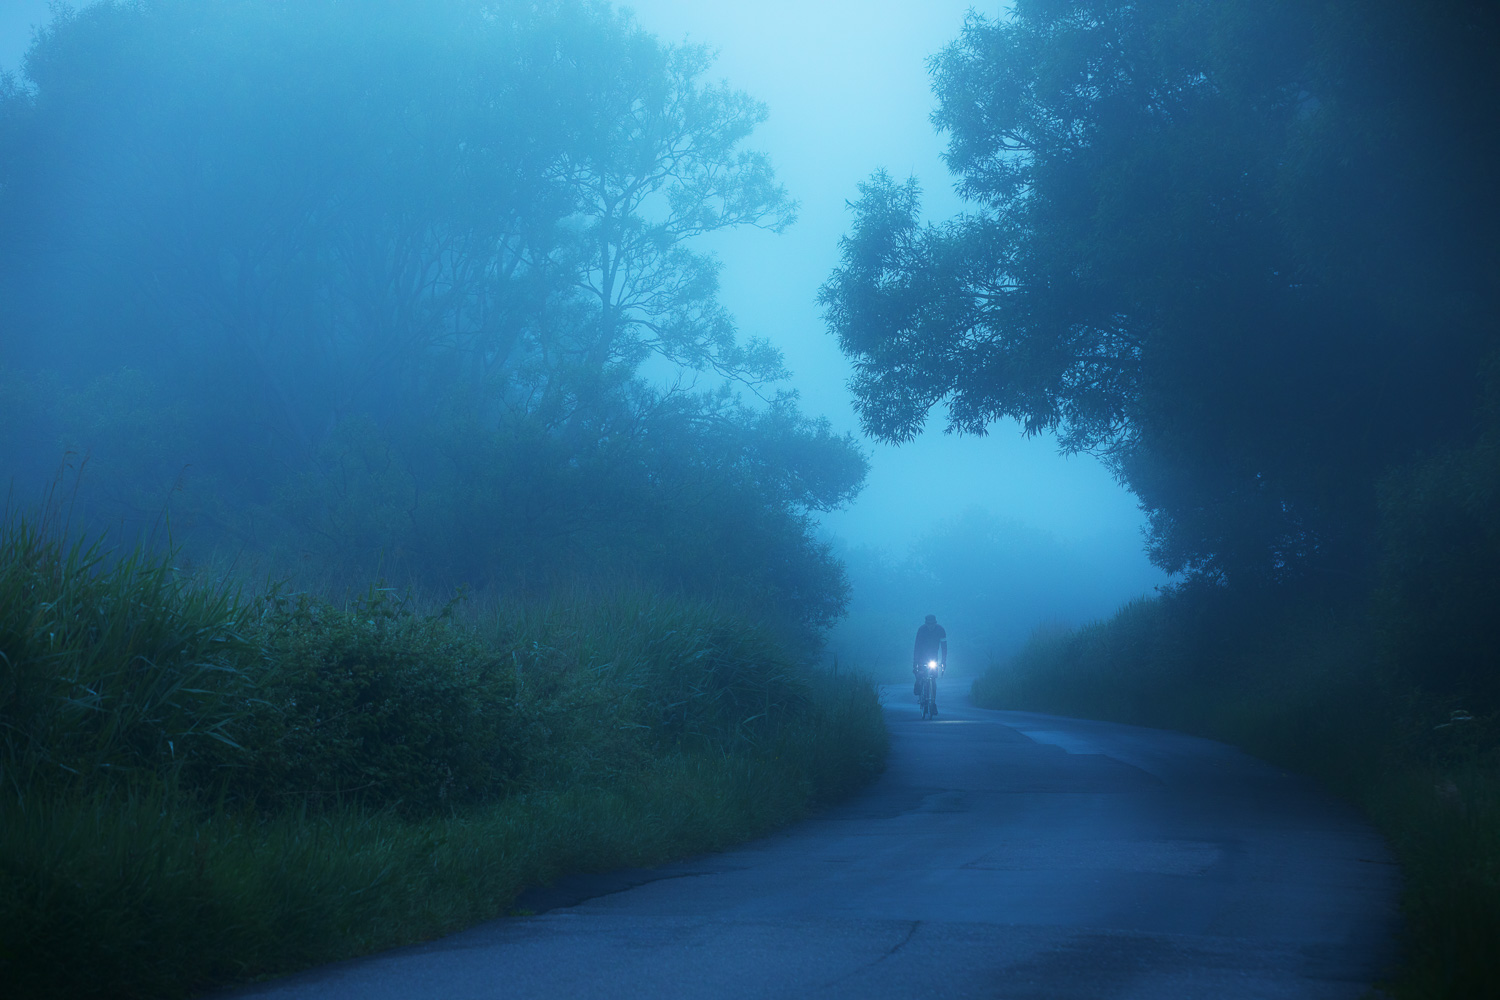 Lone cyclist pedalling along a foggy country lane at night